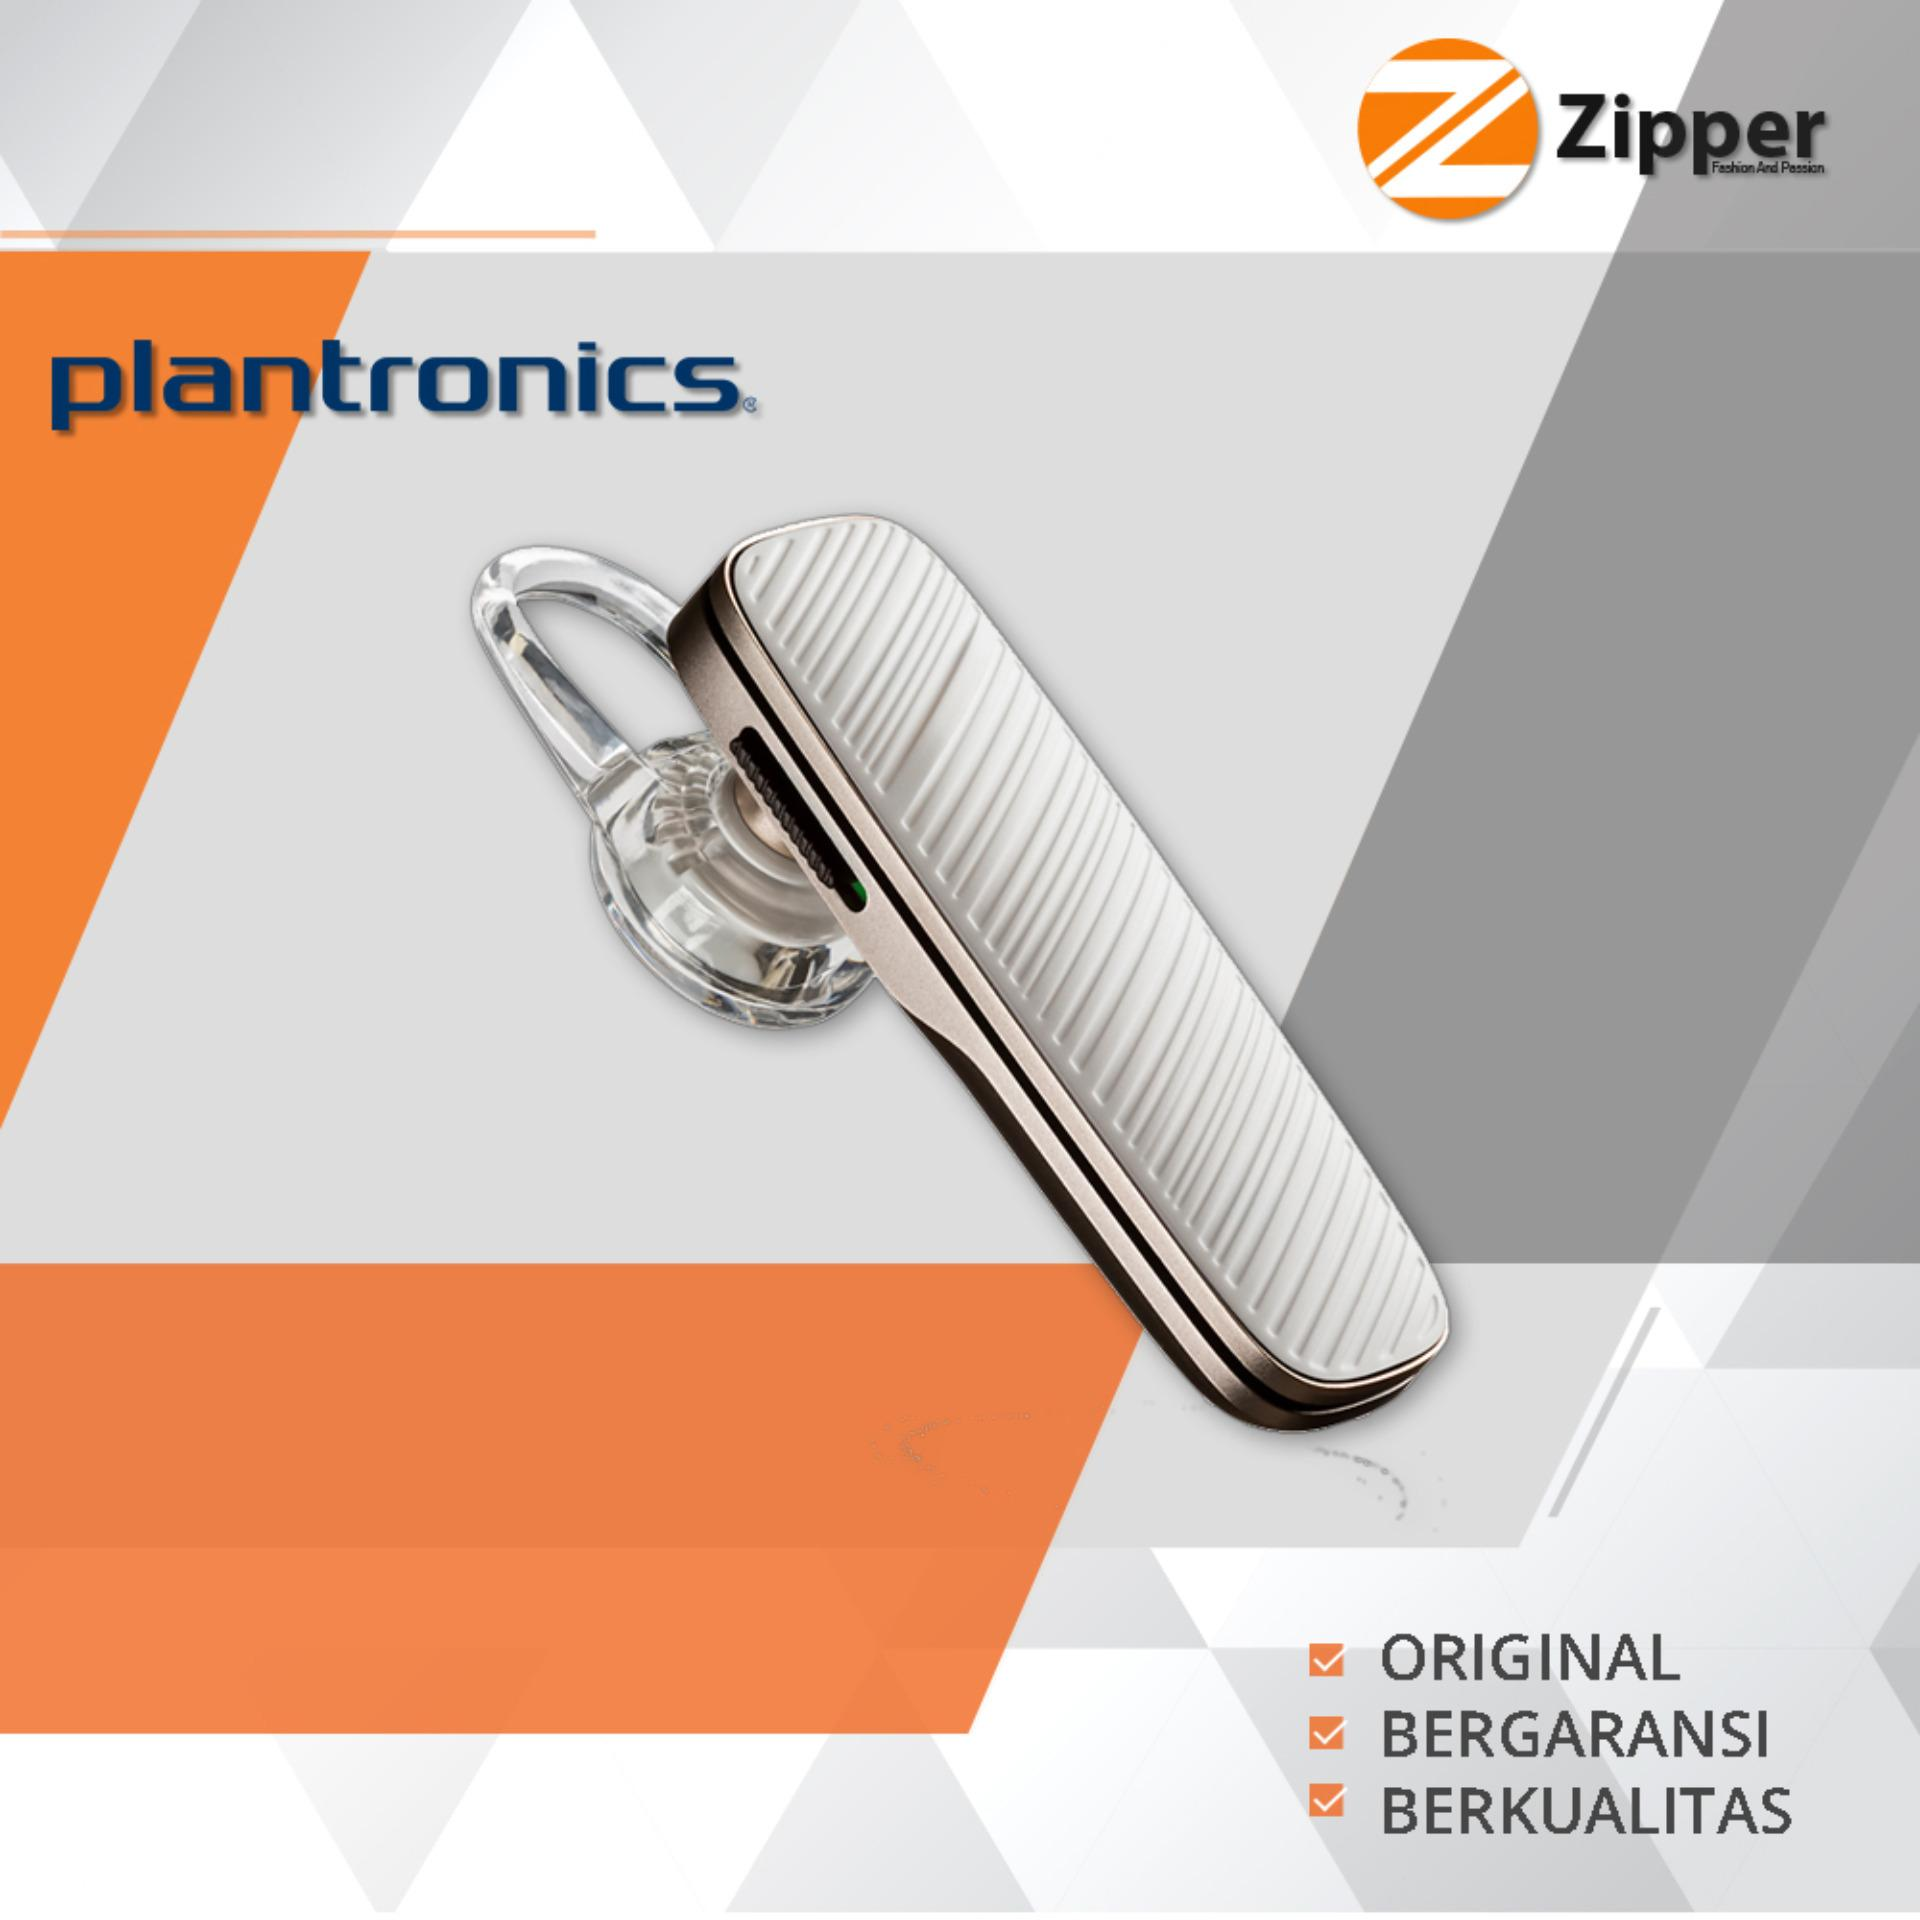 Diskon Plantronics Explorer 500 Mobile Bluetooth Headset Akhir Tahun